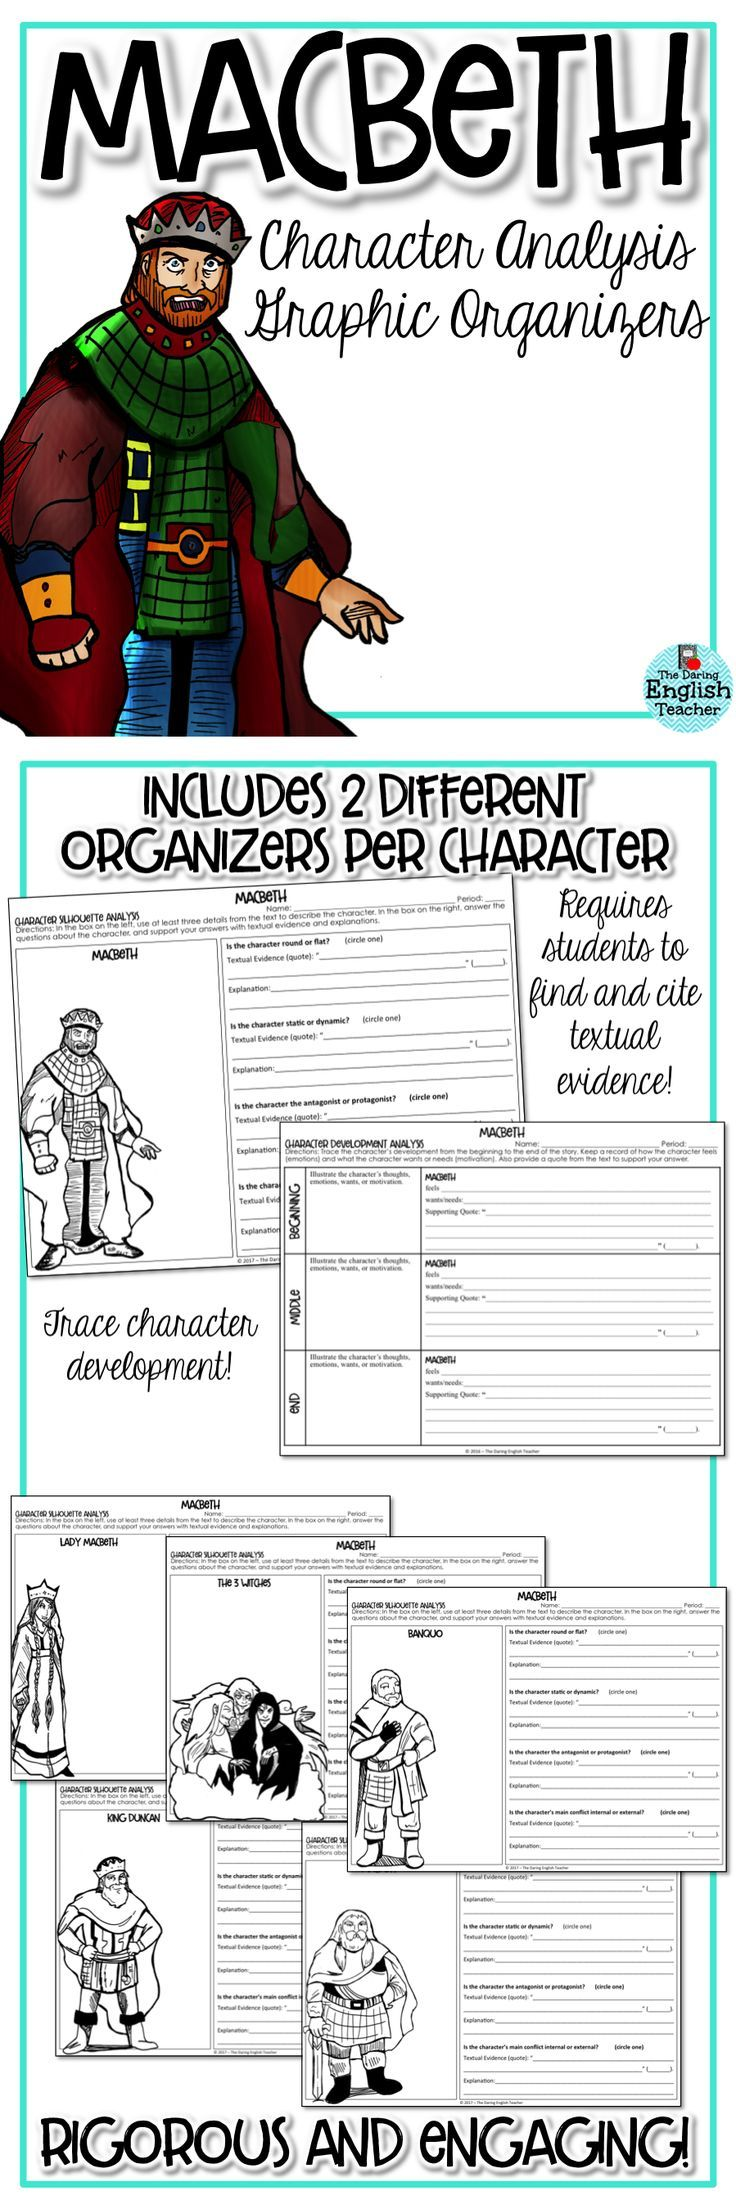 Character analysis organizers for William Shakespeare's Macbeth. These organizers are rigorous and require students to cite textual evidence.